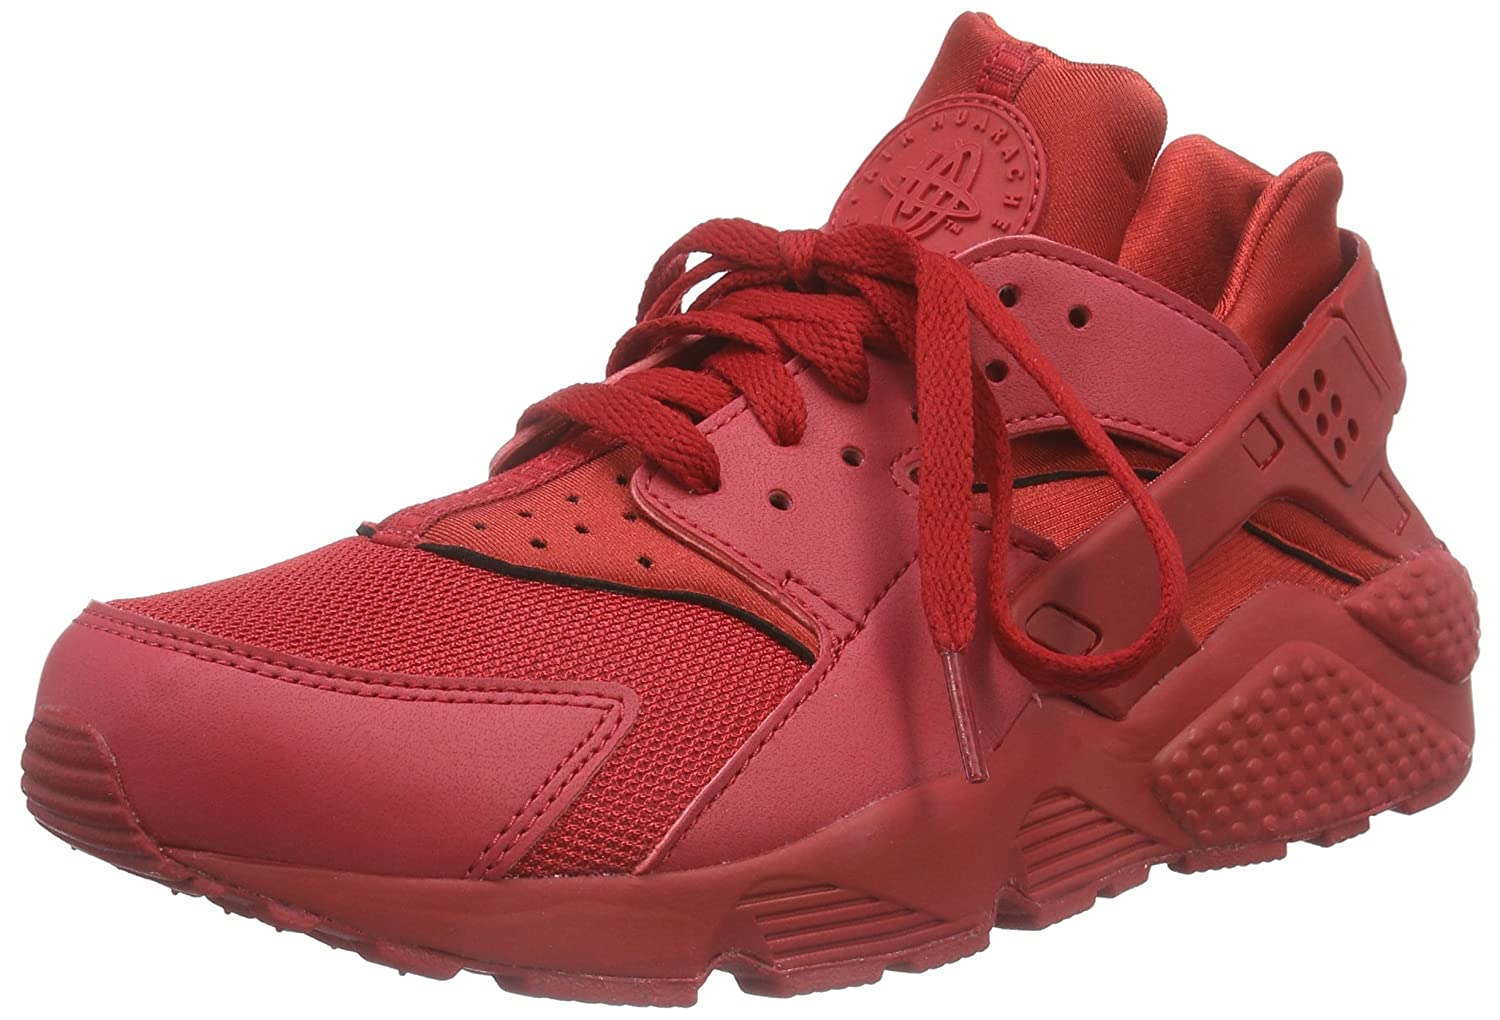 new style e496b f557b Amazon.com  Nike Men s Air Huarache Running Shoe  Nike  Shoes